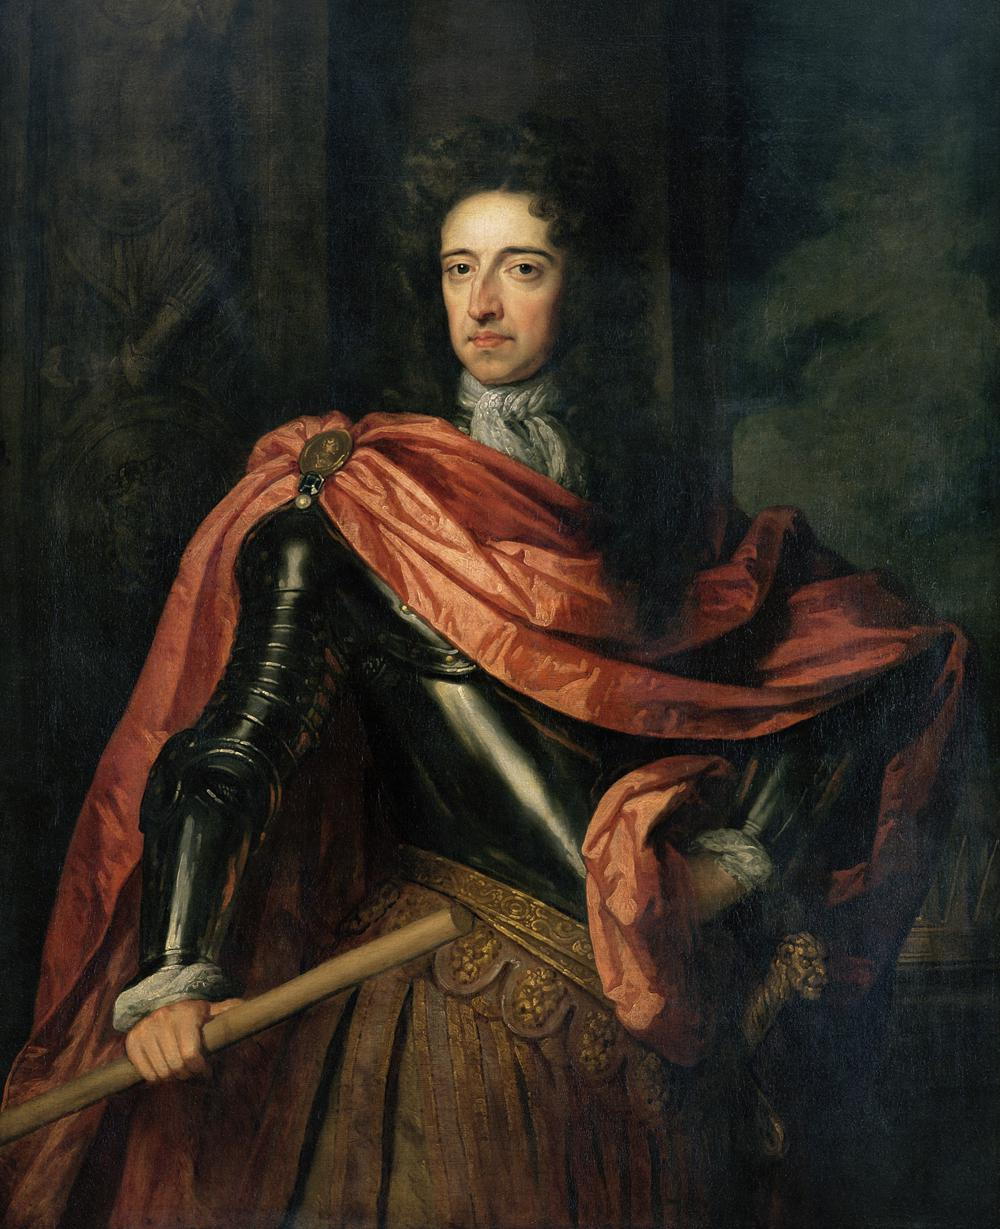 William III (1650-1702) of Orange (oil on canvas) (Credit: The Bridgeman Art Library/Getty Images)